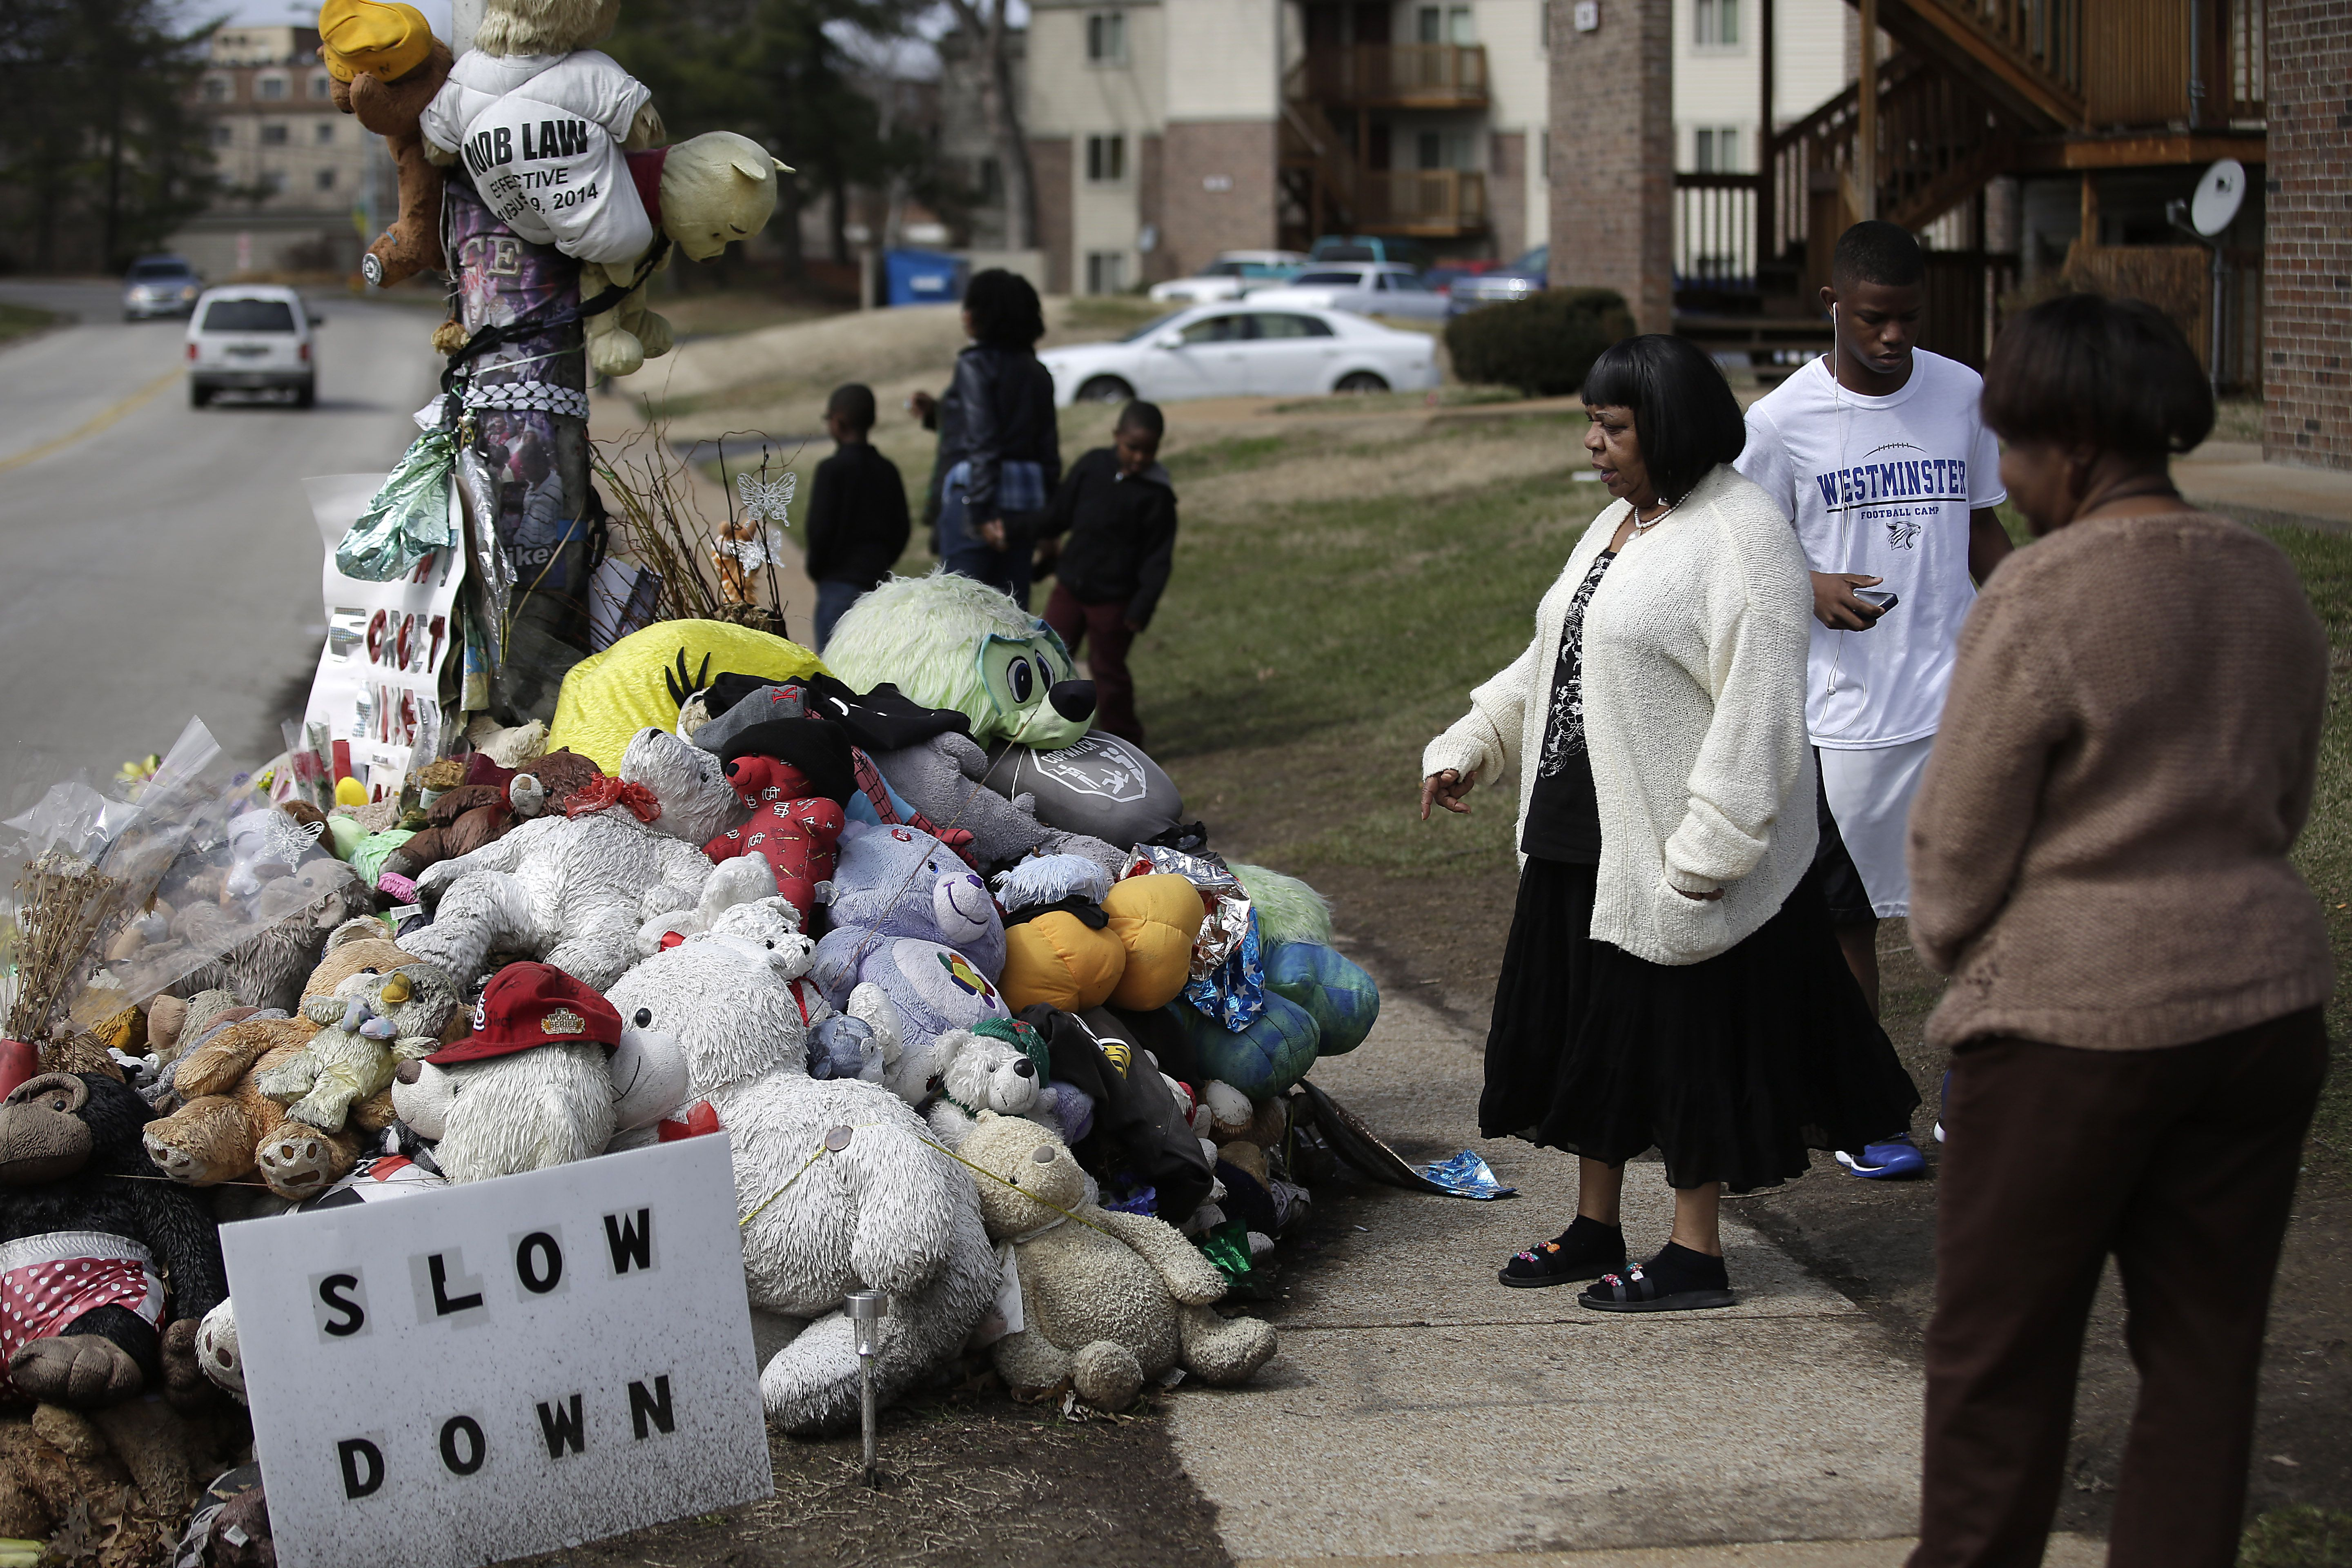 In divided Ferguson, Mo., hope and despair grapple for dominance